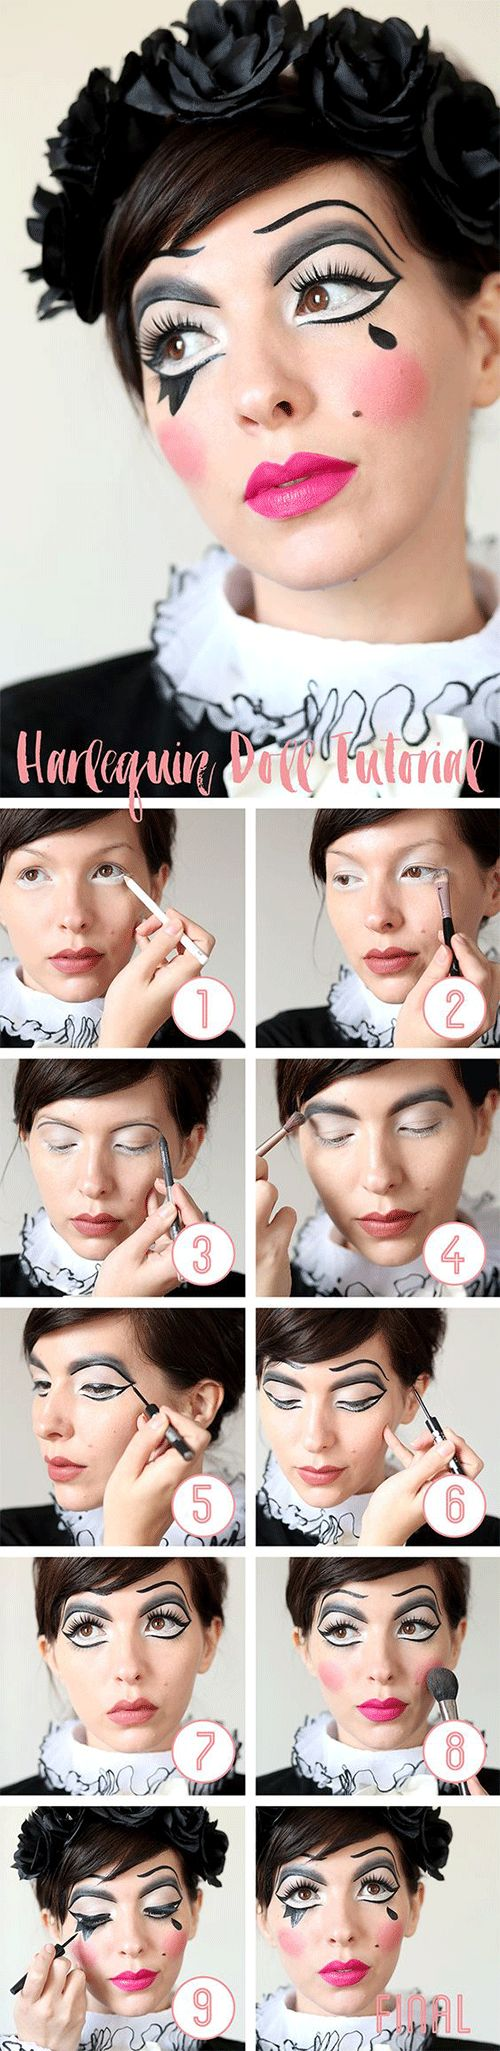 a step by step halloween makeup tutorial on how to create a harlequin doll look - Halloween Makeup For Beginners